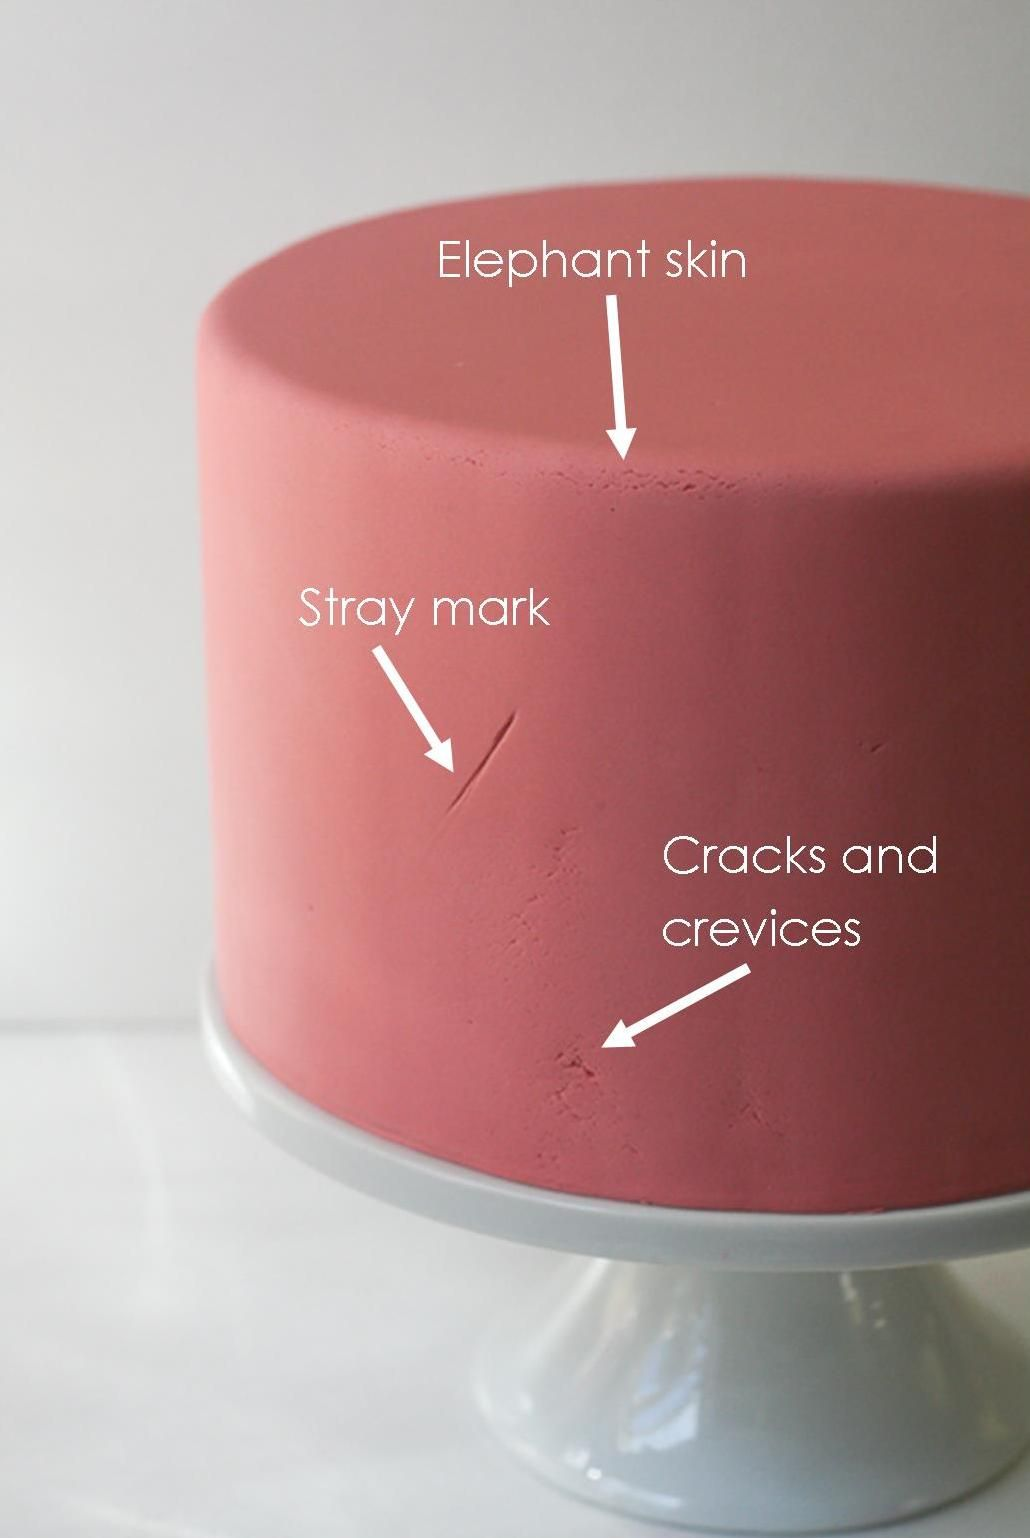 How To Fix Cracked Icing On Cake